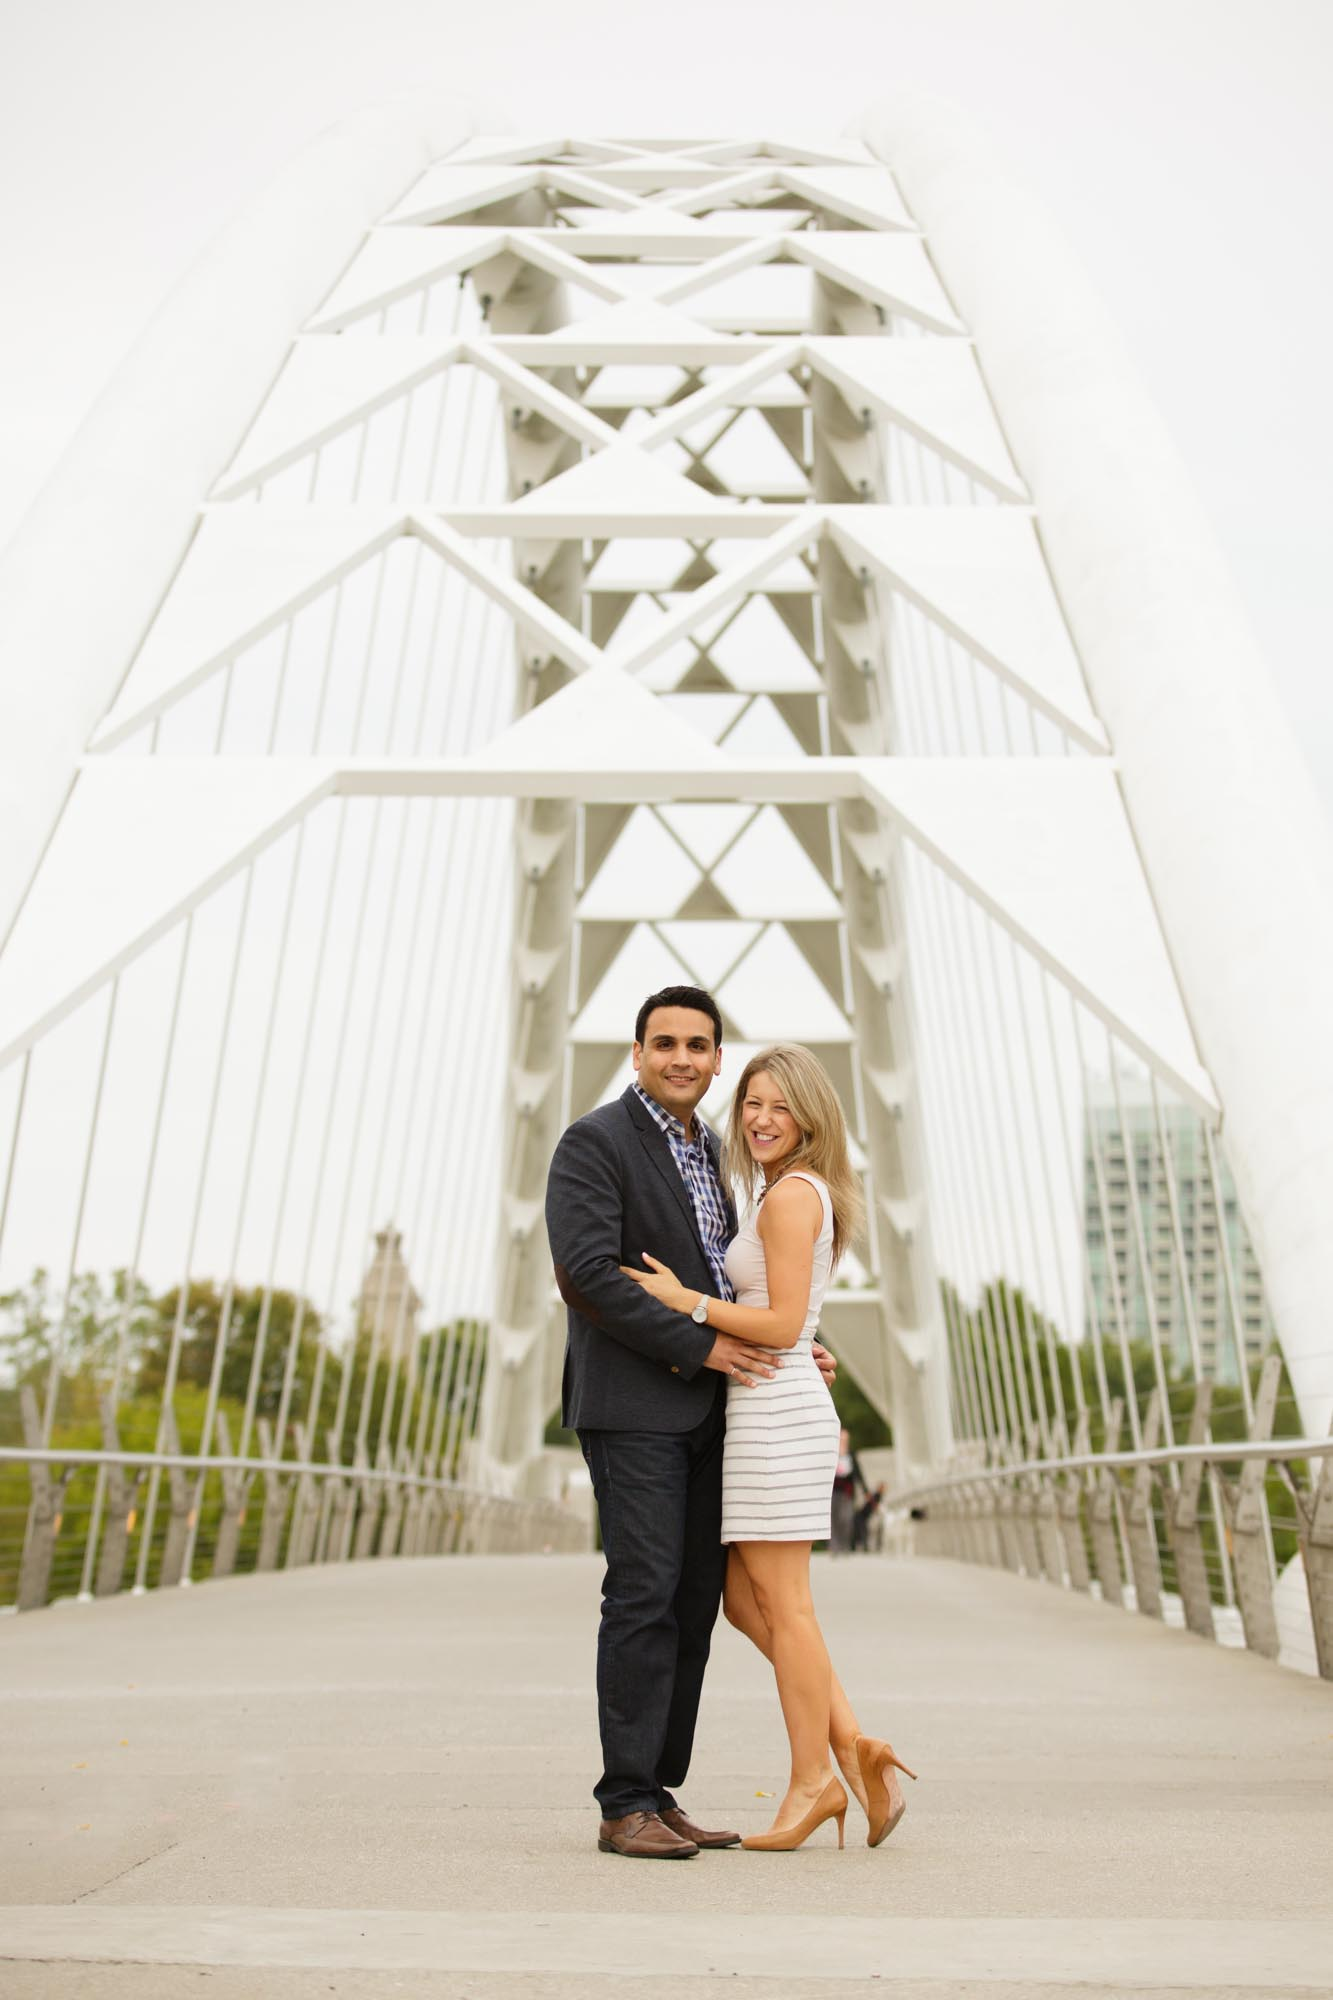 Biljana + Joe Bridge